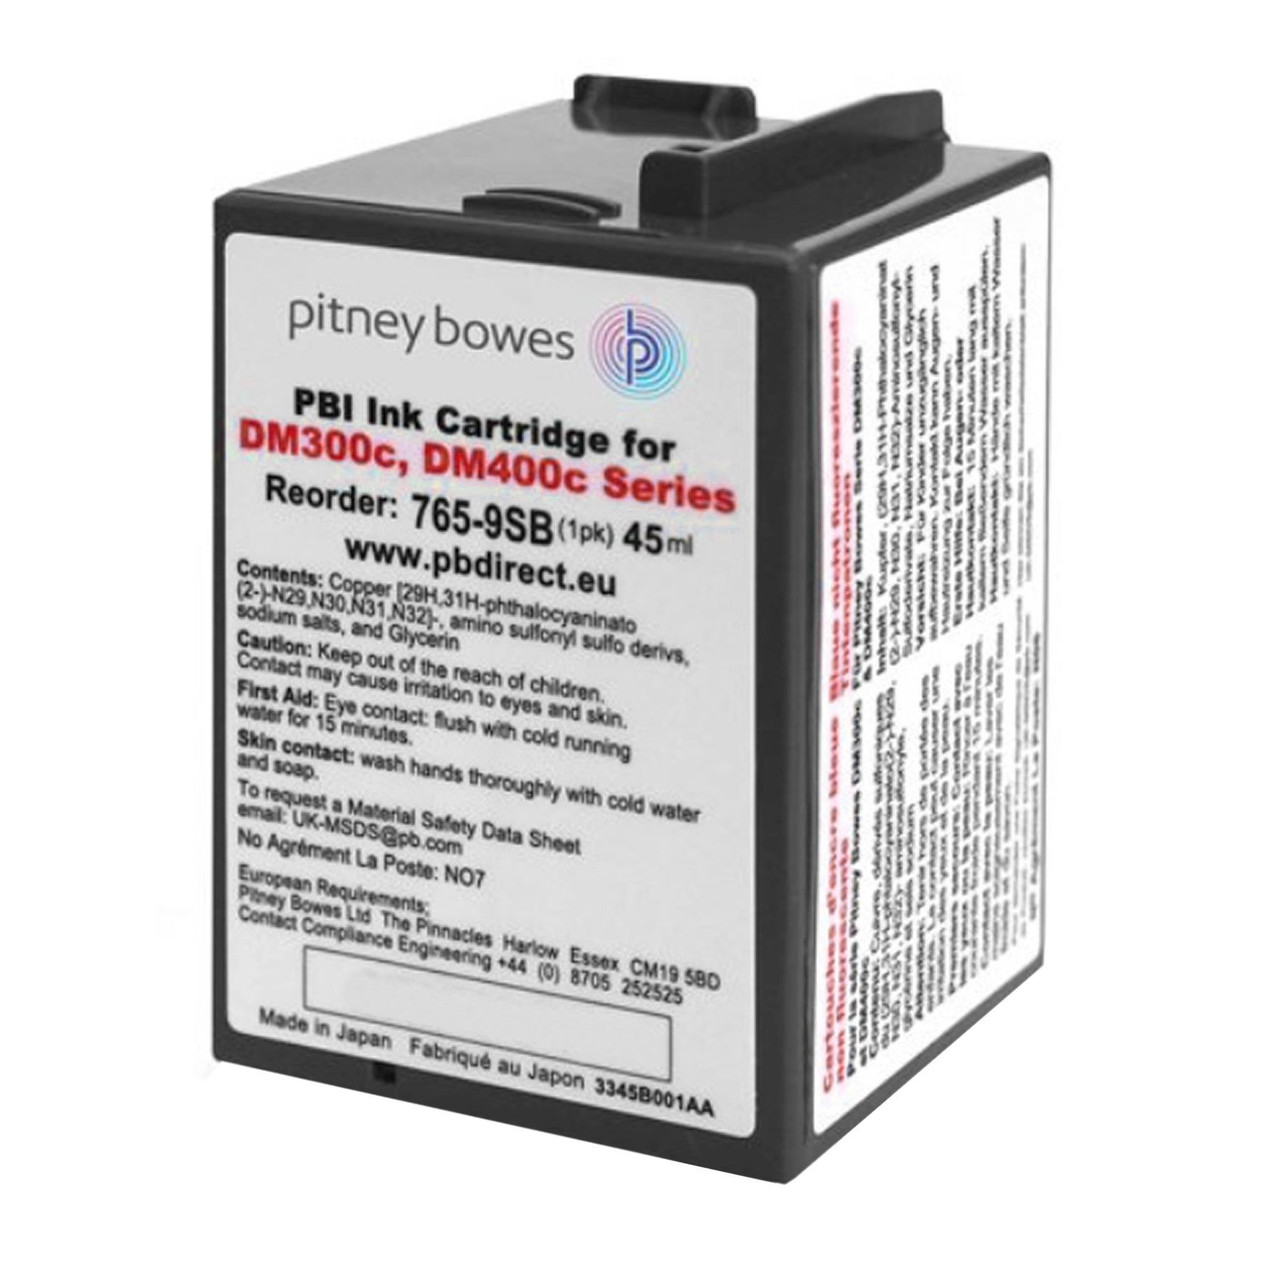 Original Pitney Bowes DM300c DM400c Franking Ink Cartridge